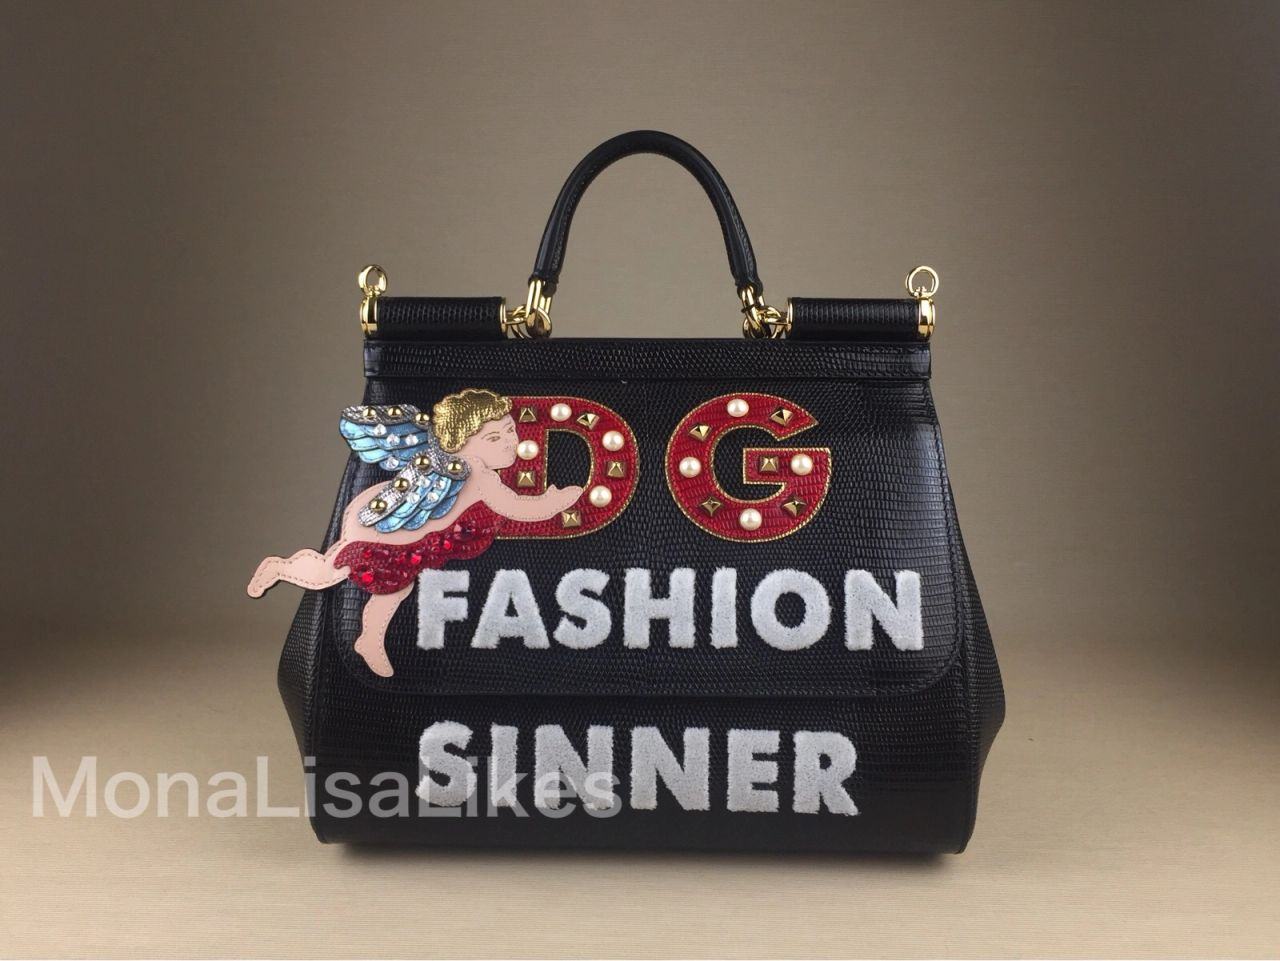 DOLCE   GABBANA angel embellished mediummiss sicily bag in black dauphine  leather This DOLCE   GABBANA Fashion Sinner Miss ... cf680f0566d07